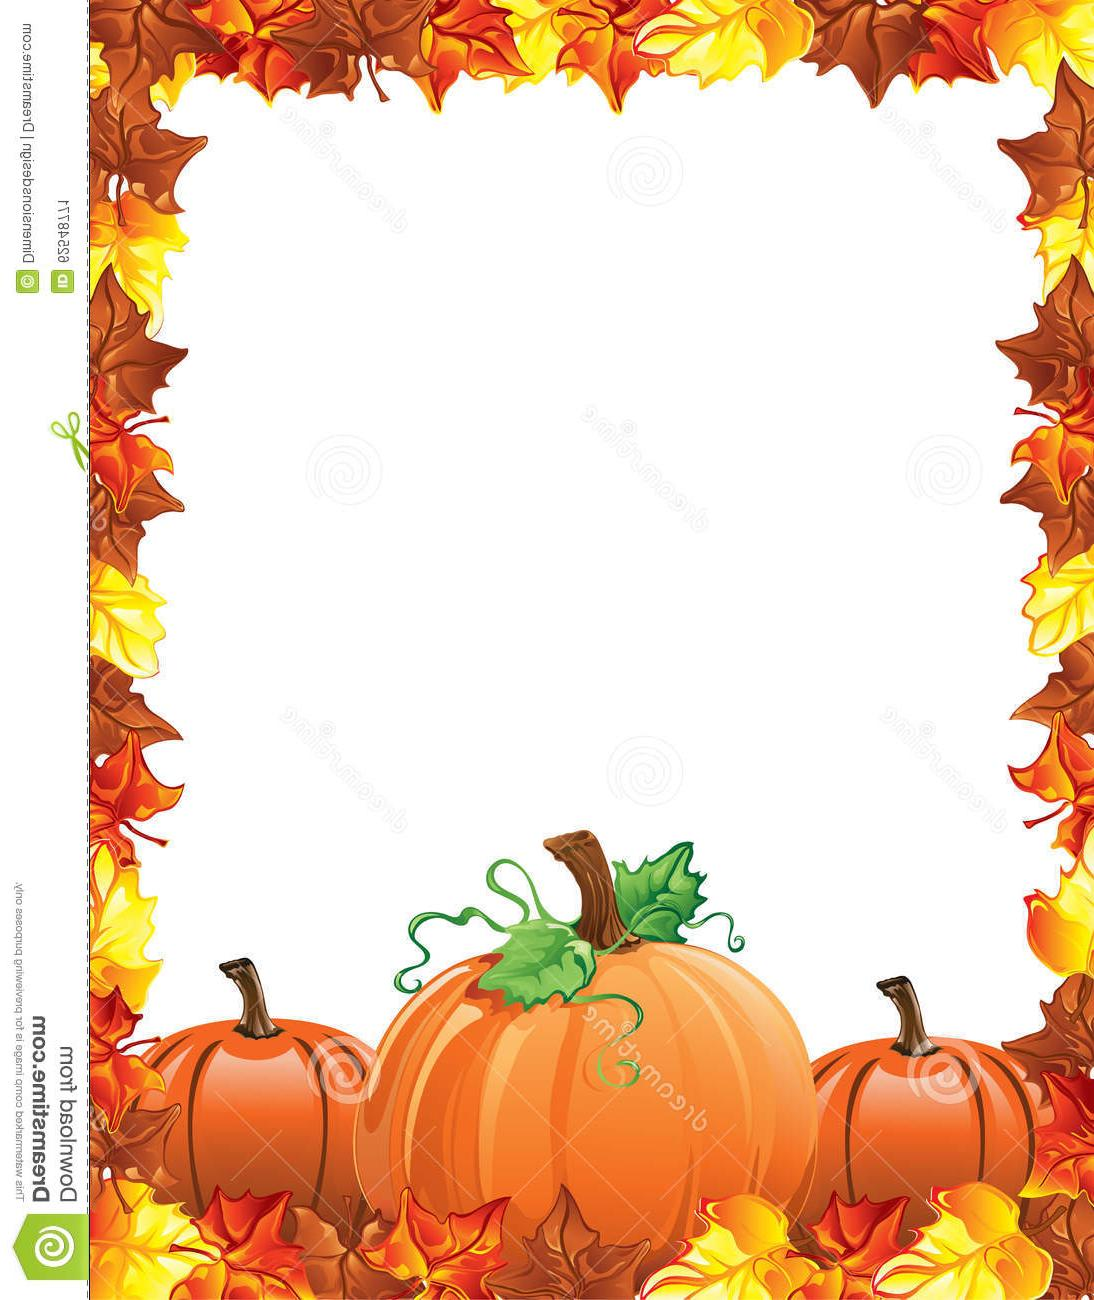 1094x1300 Hd Fall Leaves Pumpkins Border Illustration Autumn Design